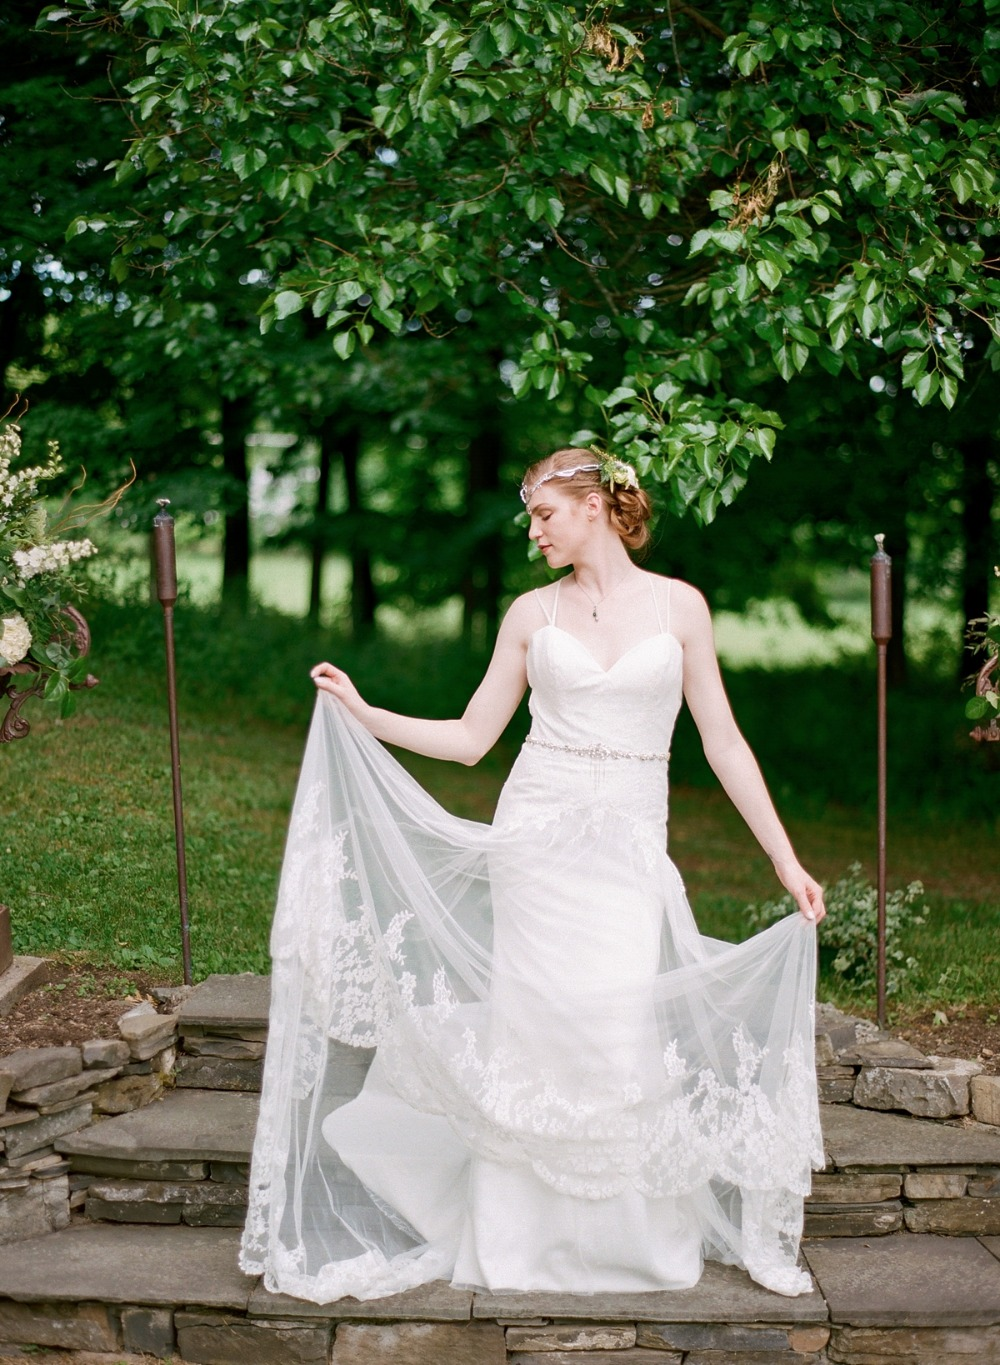 Strappy lace wedding gown